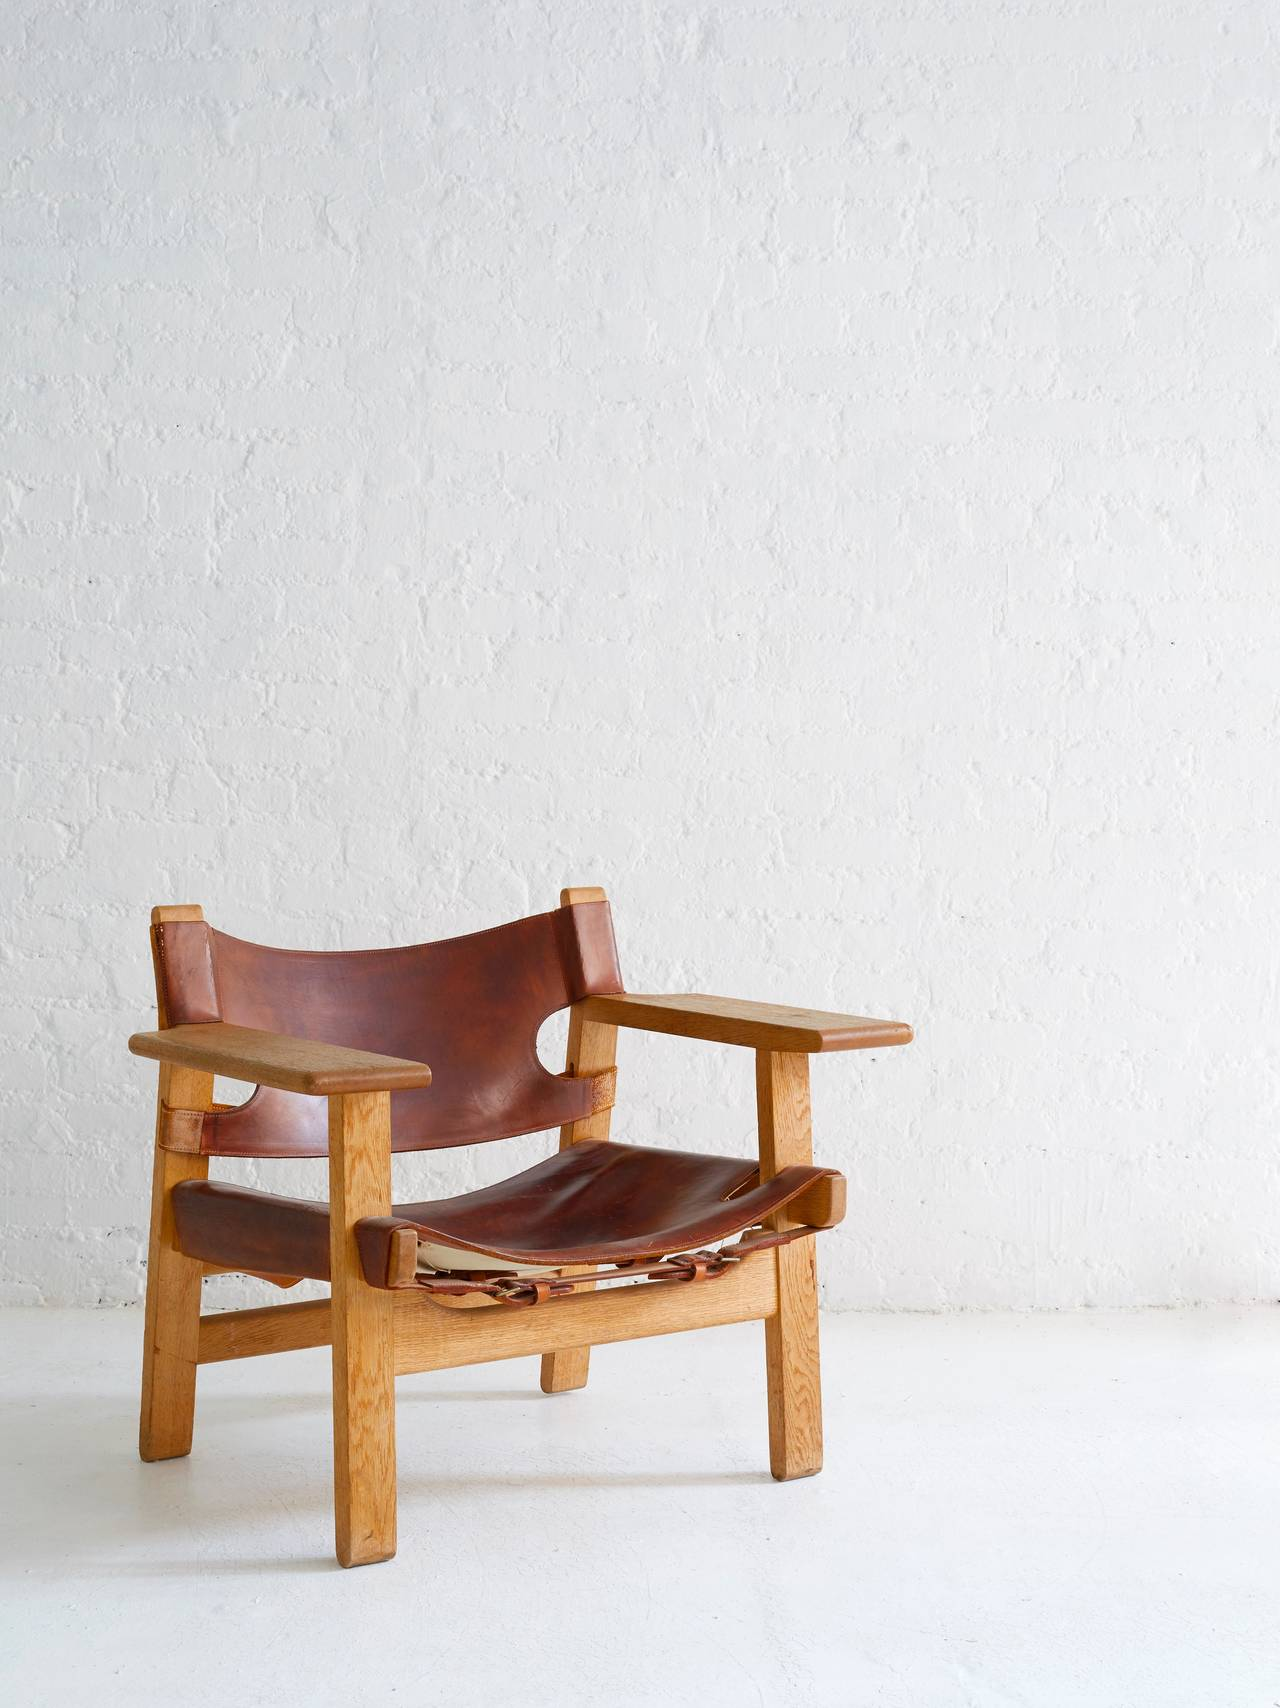 Iconic Borge Mogensen Spanish Chair with superlative patina.   Thick cognac leather is exquisite with age; beautiful oak frame.